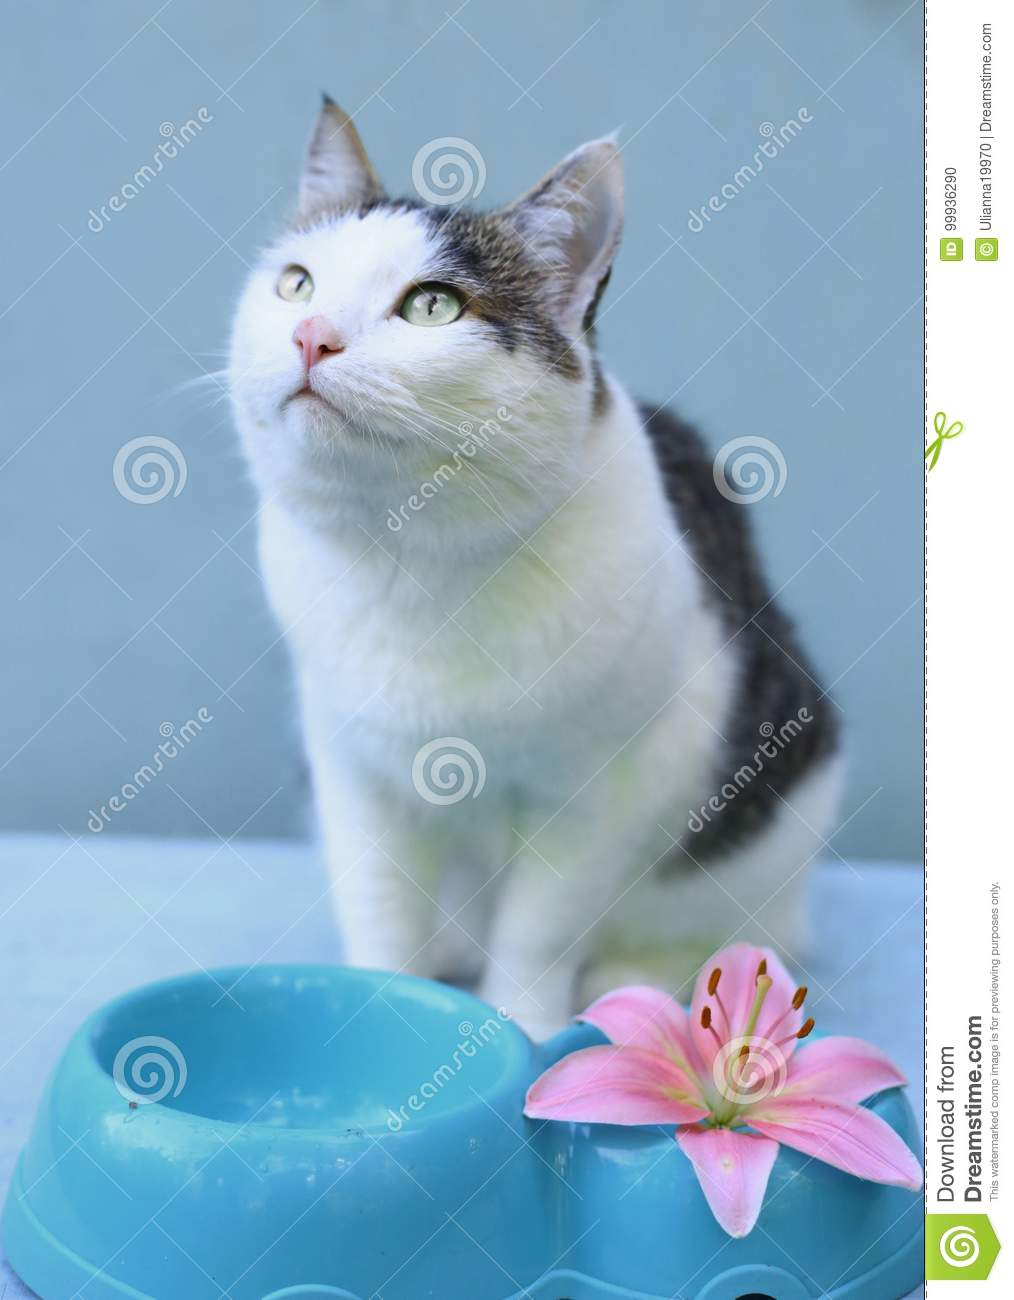 Hugry Cat Ask For Eating With Blue Bowl Stock Photo Image Of